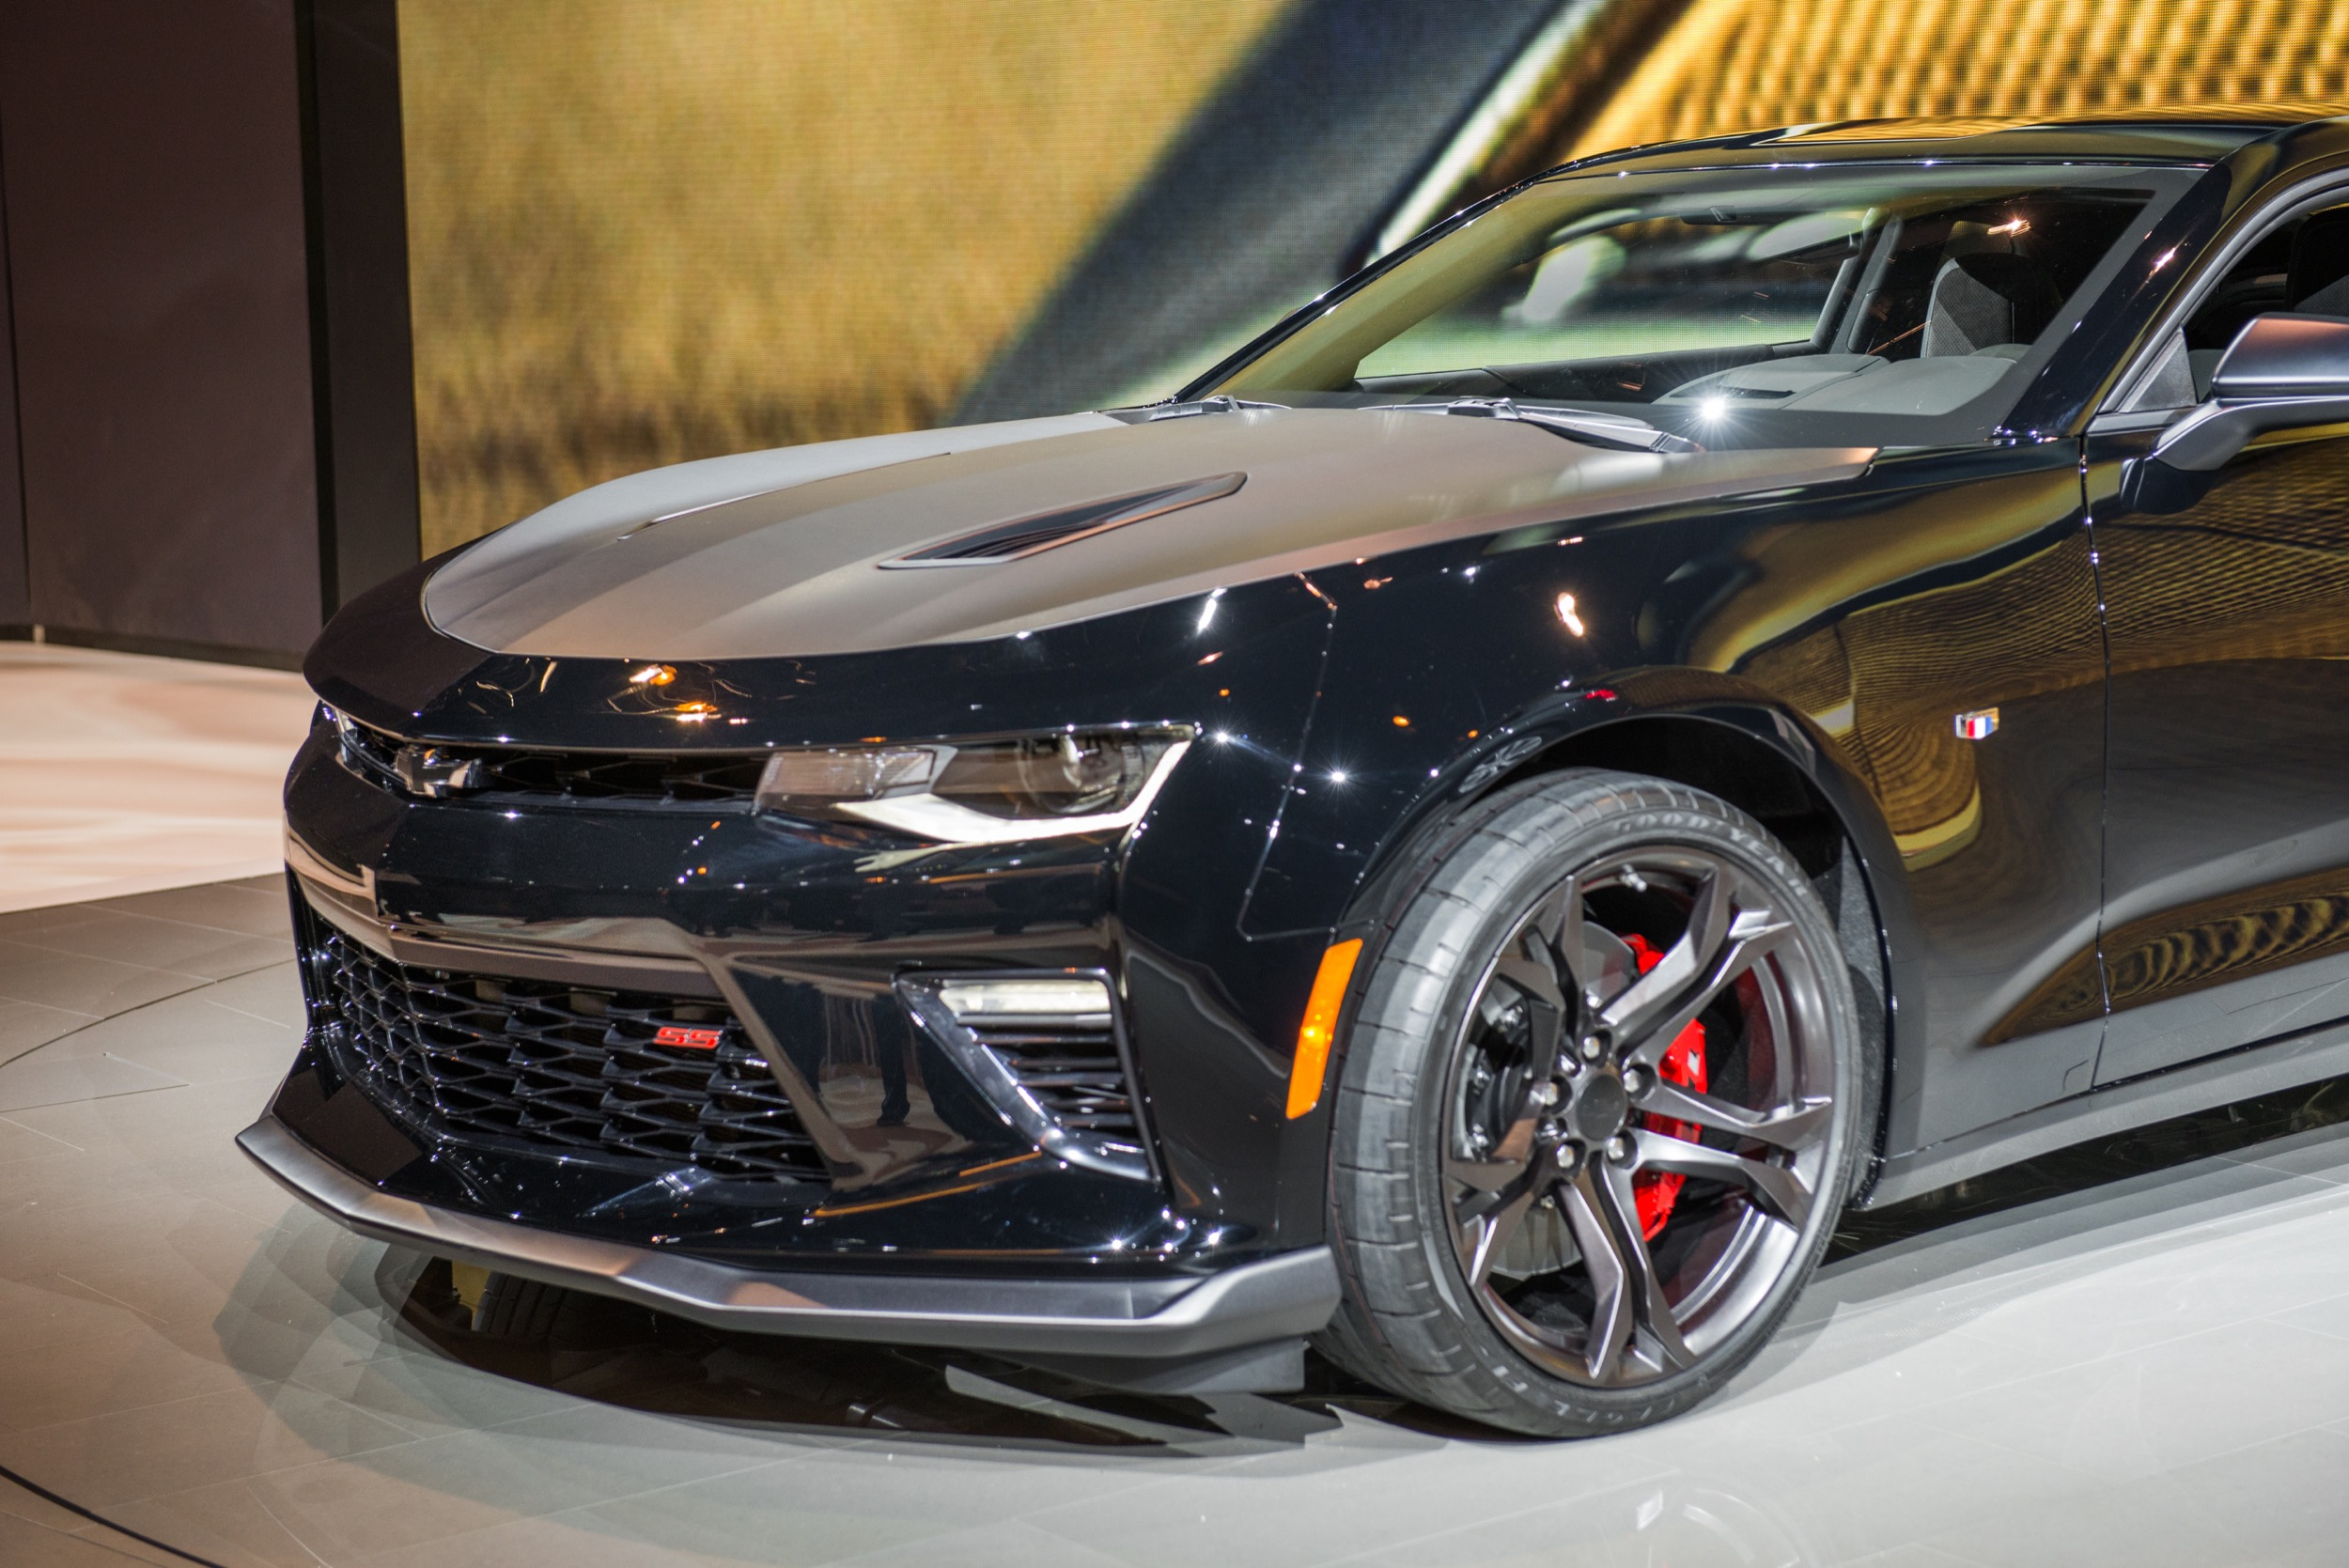 2017 Chevrolet Camaro Black Concept photo - 2